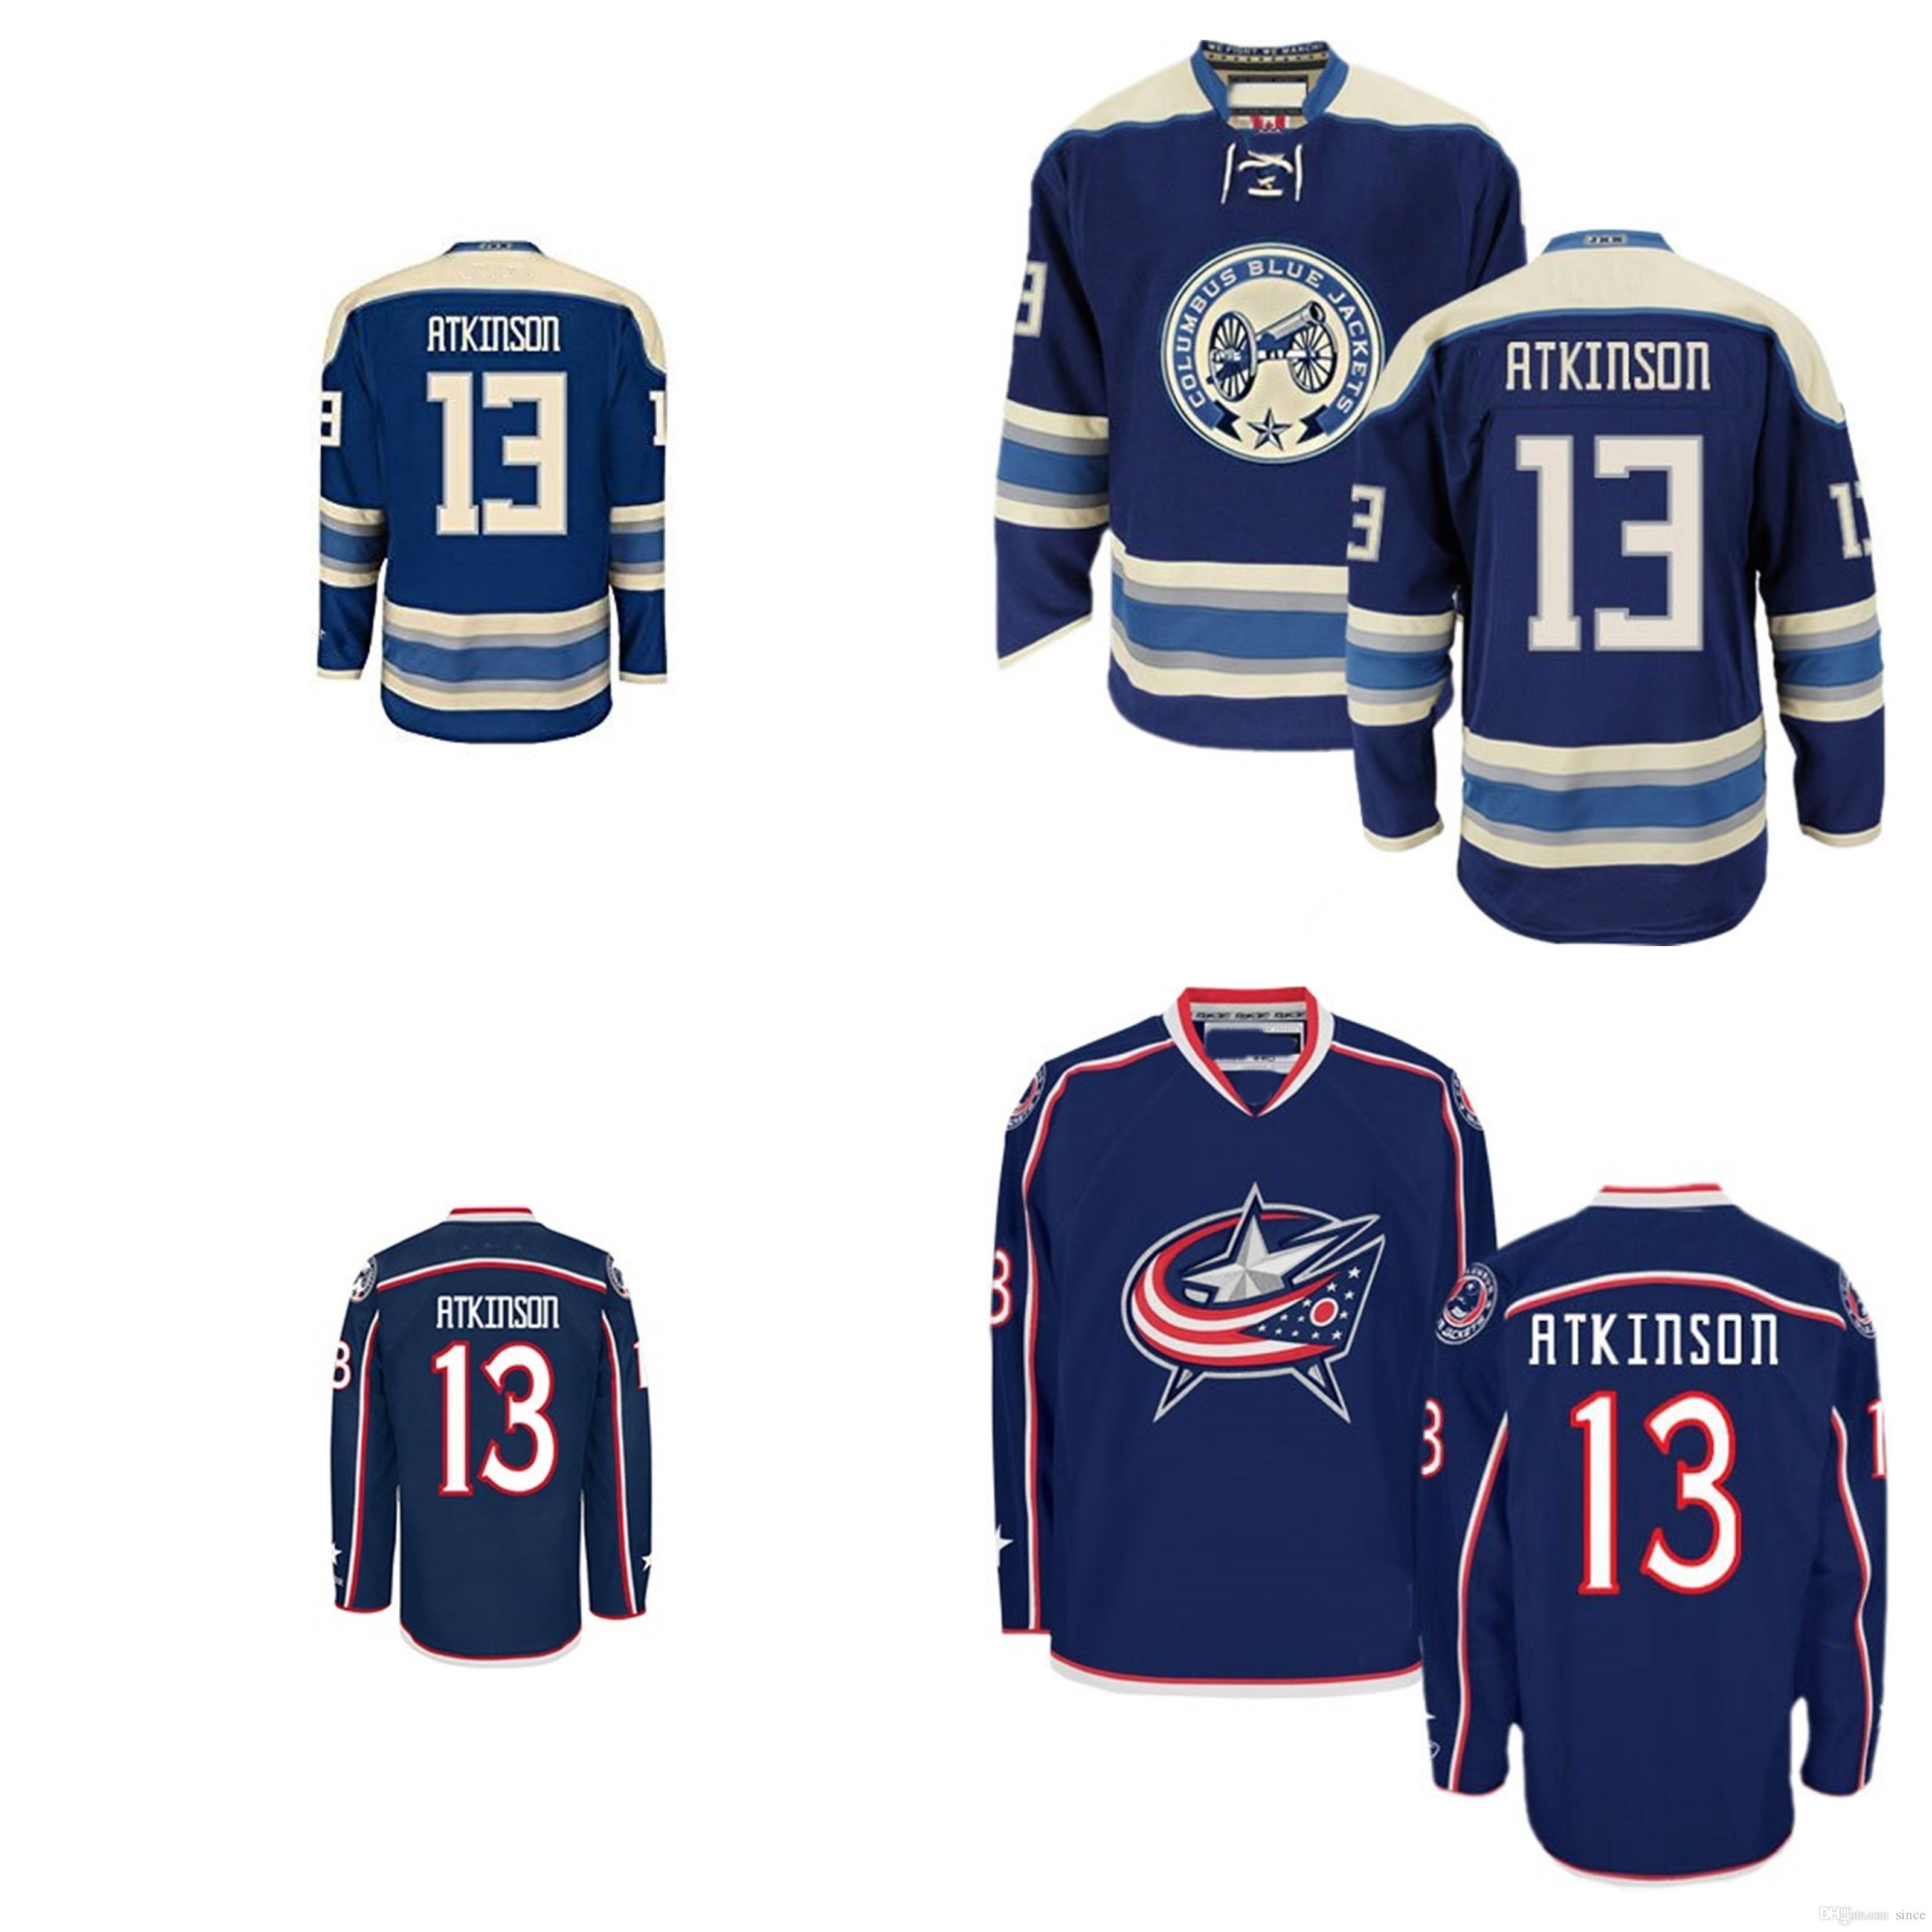 a547f793e ... Jersey 2017 Wholesale 2016 New Columbus Blue Jackets 13 Cam Atkinson  Blue 100% Embroidered High Quality ...